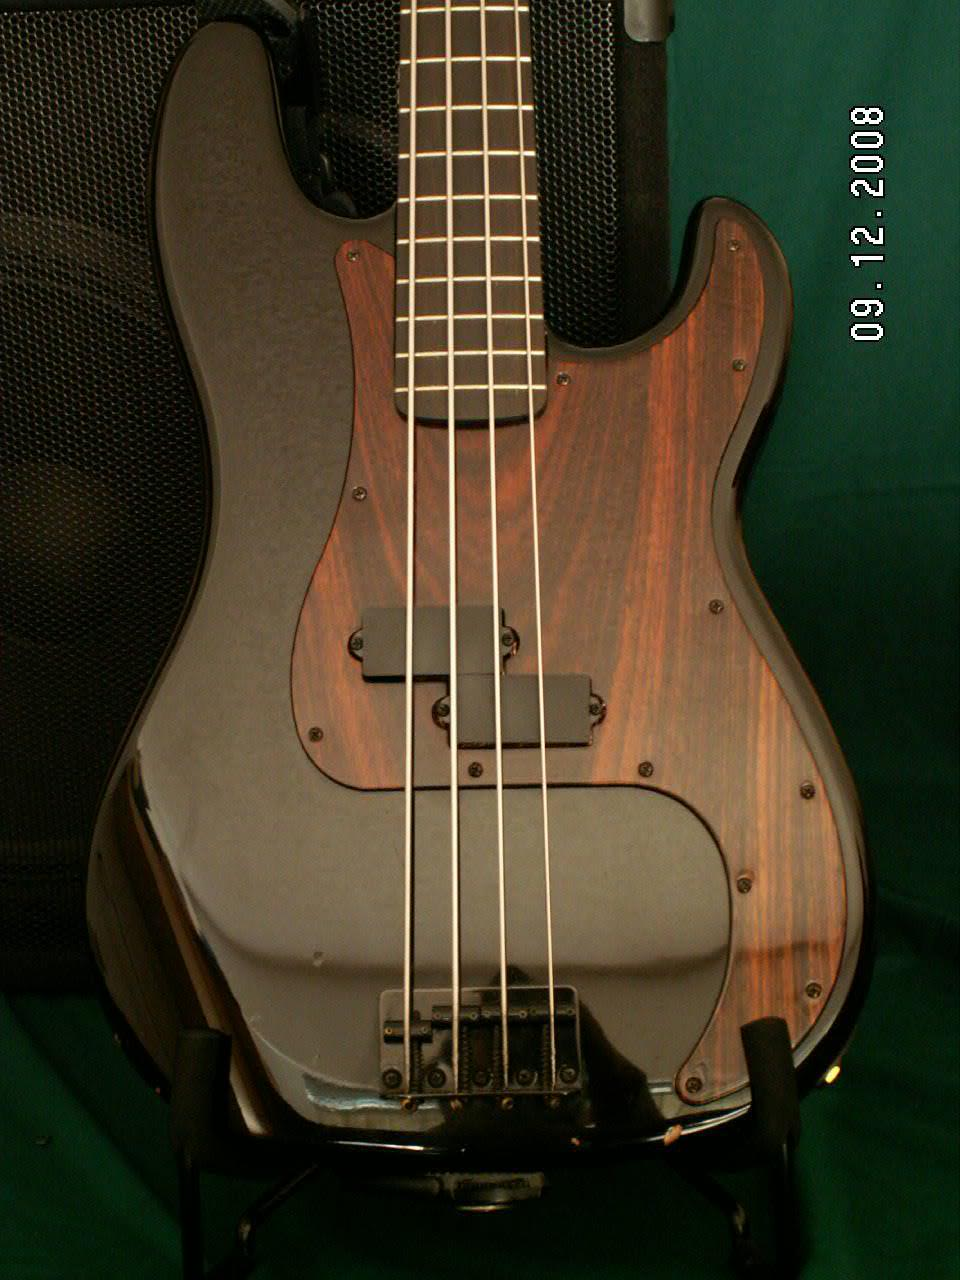 Exotic Pickguards    Let's See Them!   Page 5   TalkBass com